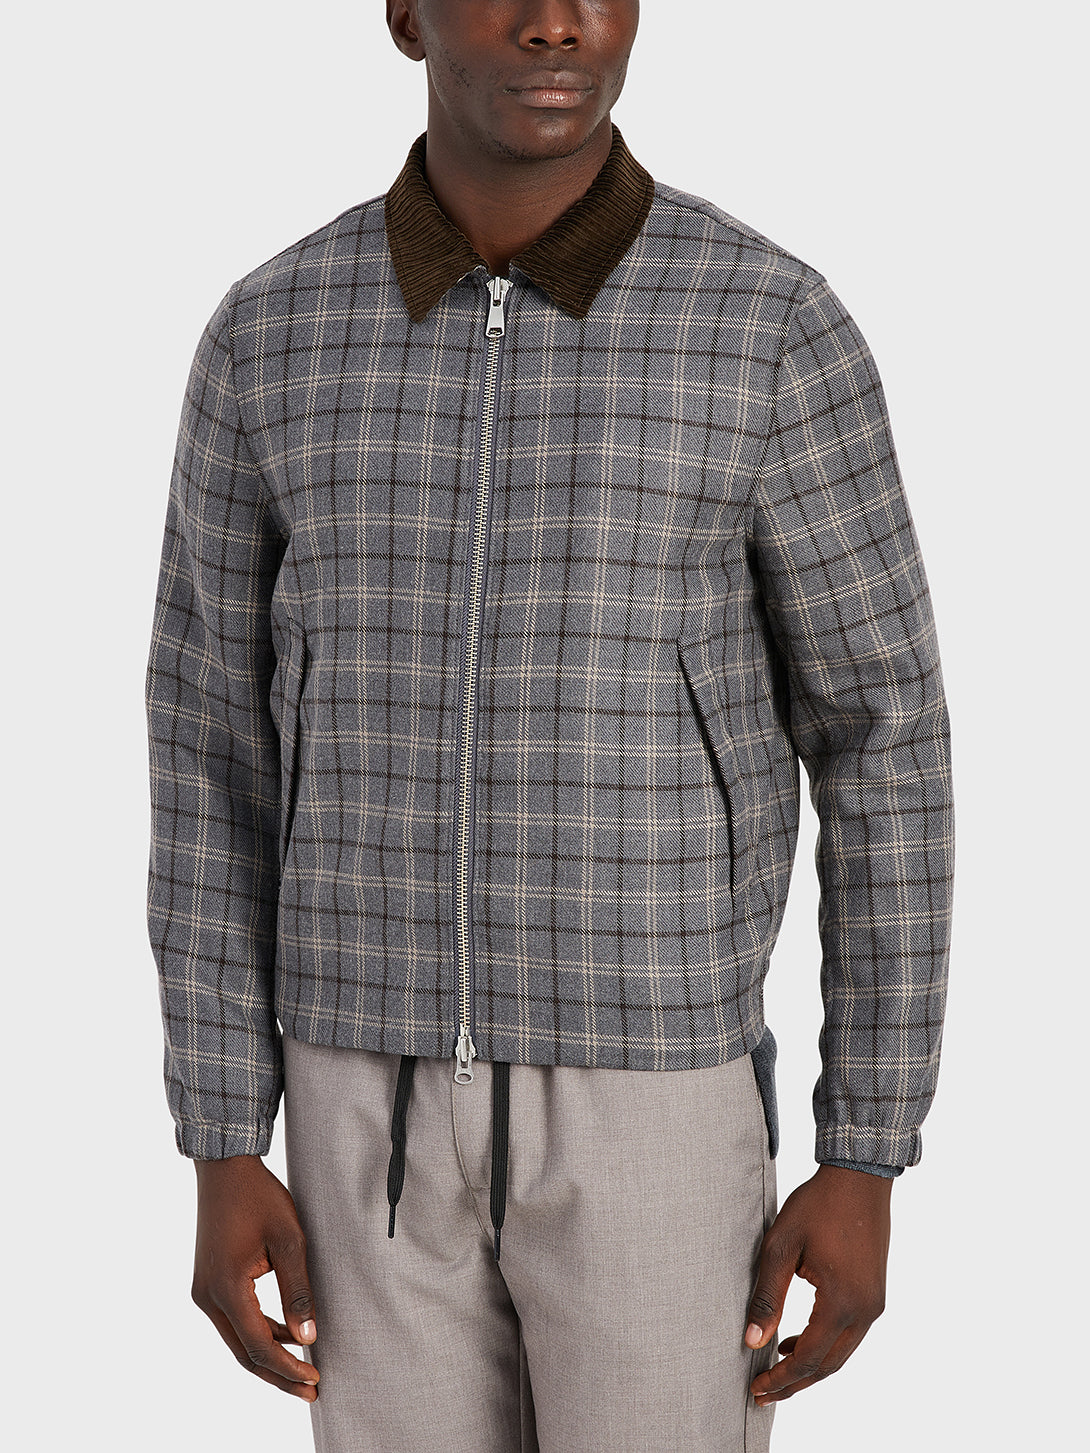 black friday deals ONS Clothing Men's outerwear in LT GREY CHECK